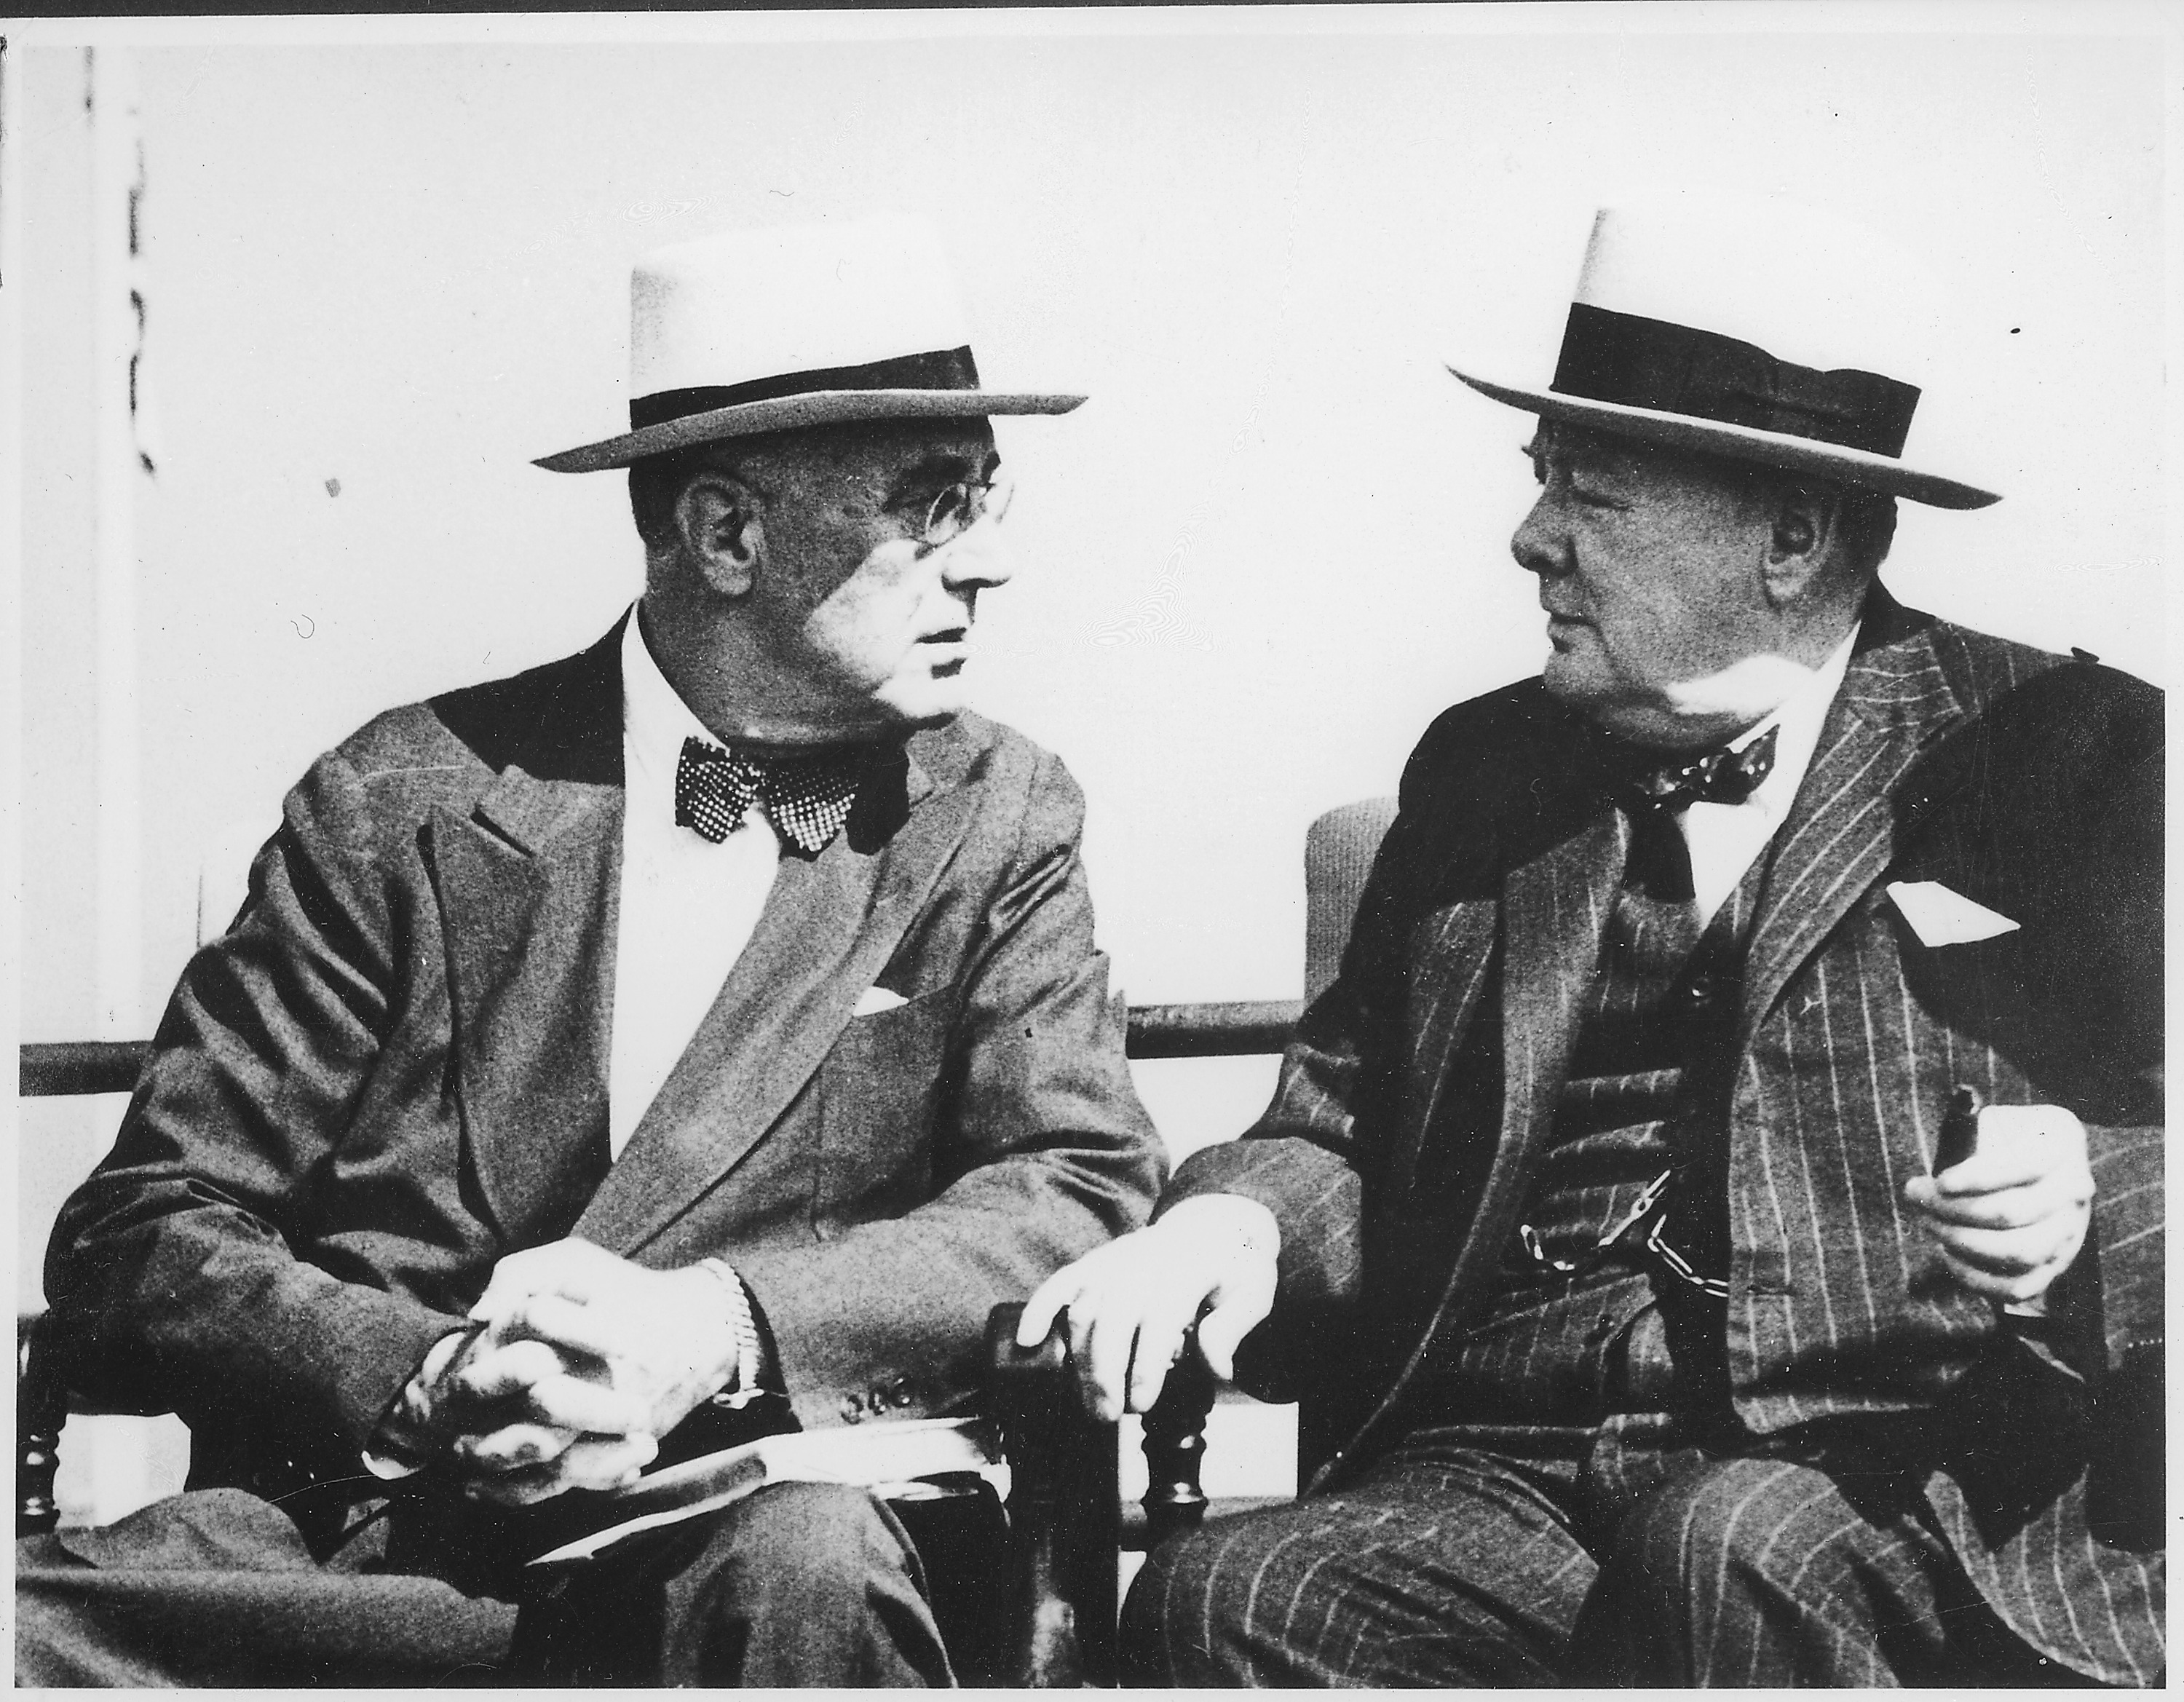 https://i1.wp.com/upload.wikimedia.org/wikipedia/commons/6/6b/Franklin_D._Roosevelt_and_Churchill_in_Quebec,_Canada_-_NARA_-_195419.jpg